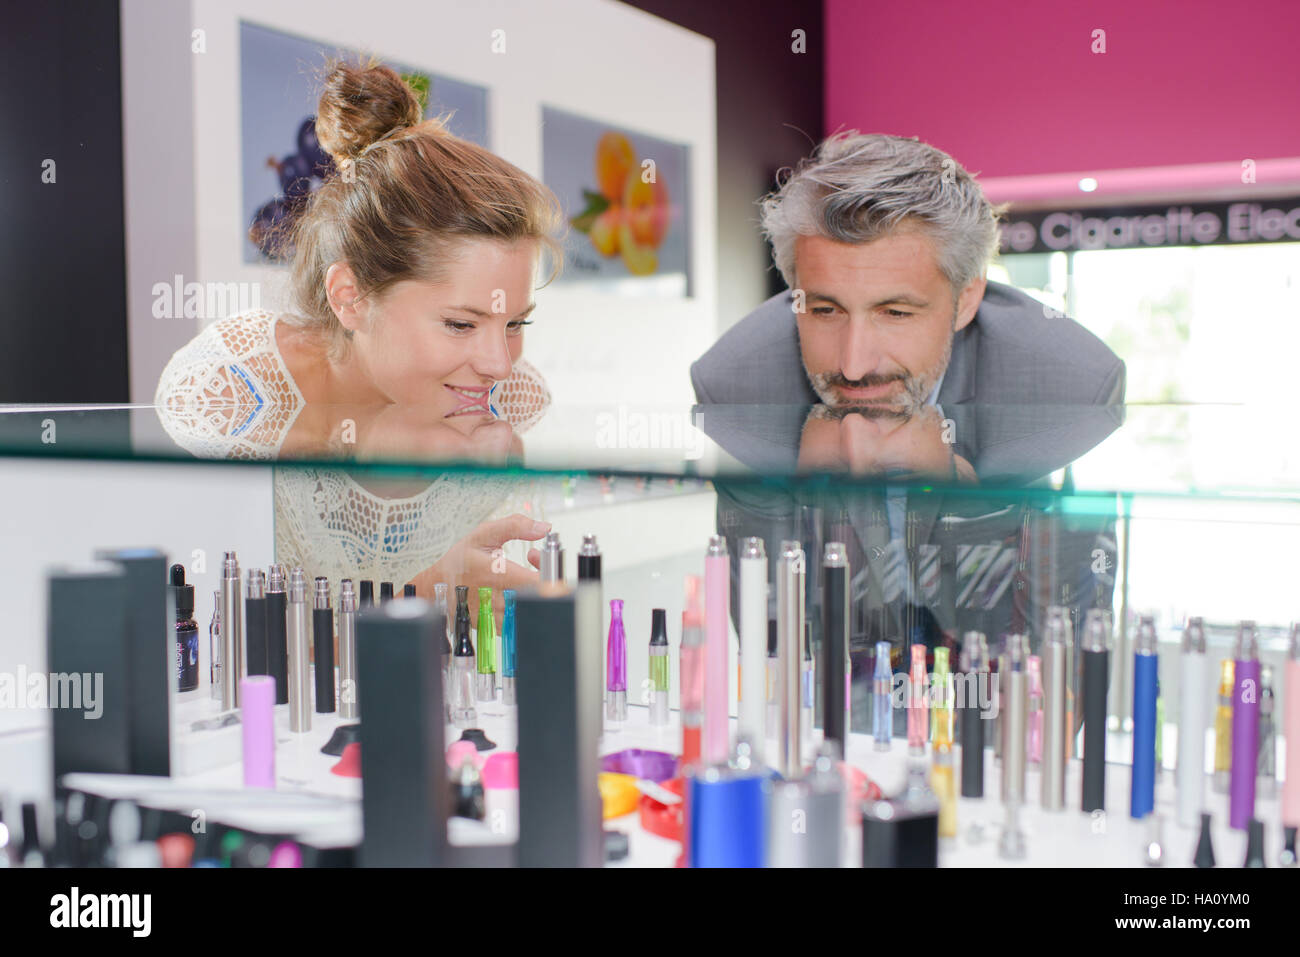 Man and lady gazing into counter of vaporisers - Stock Image